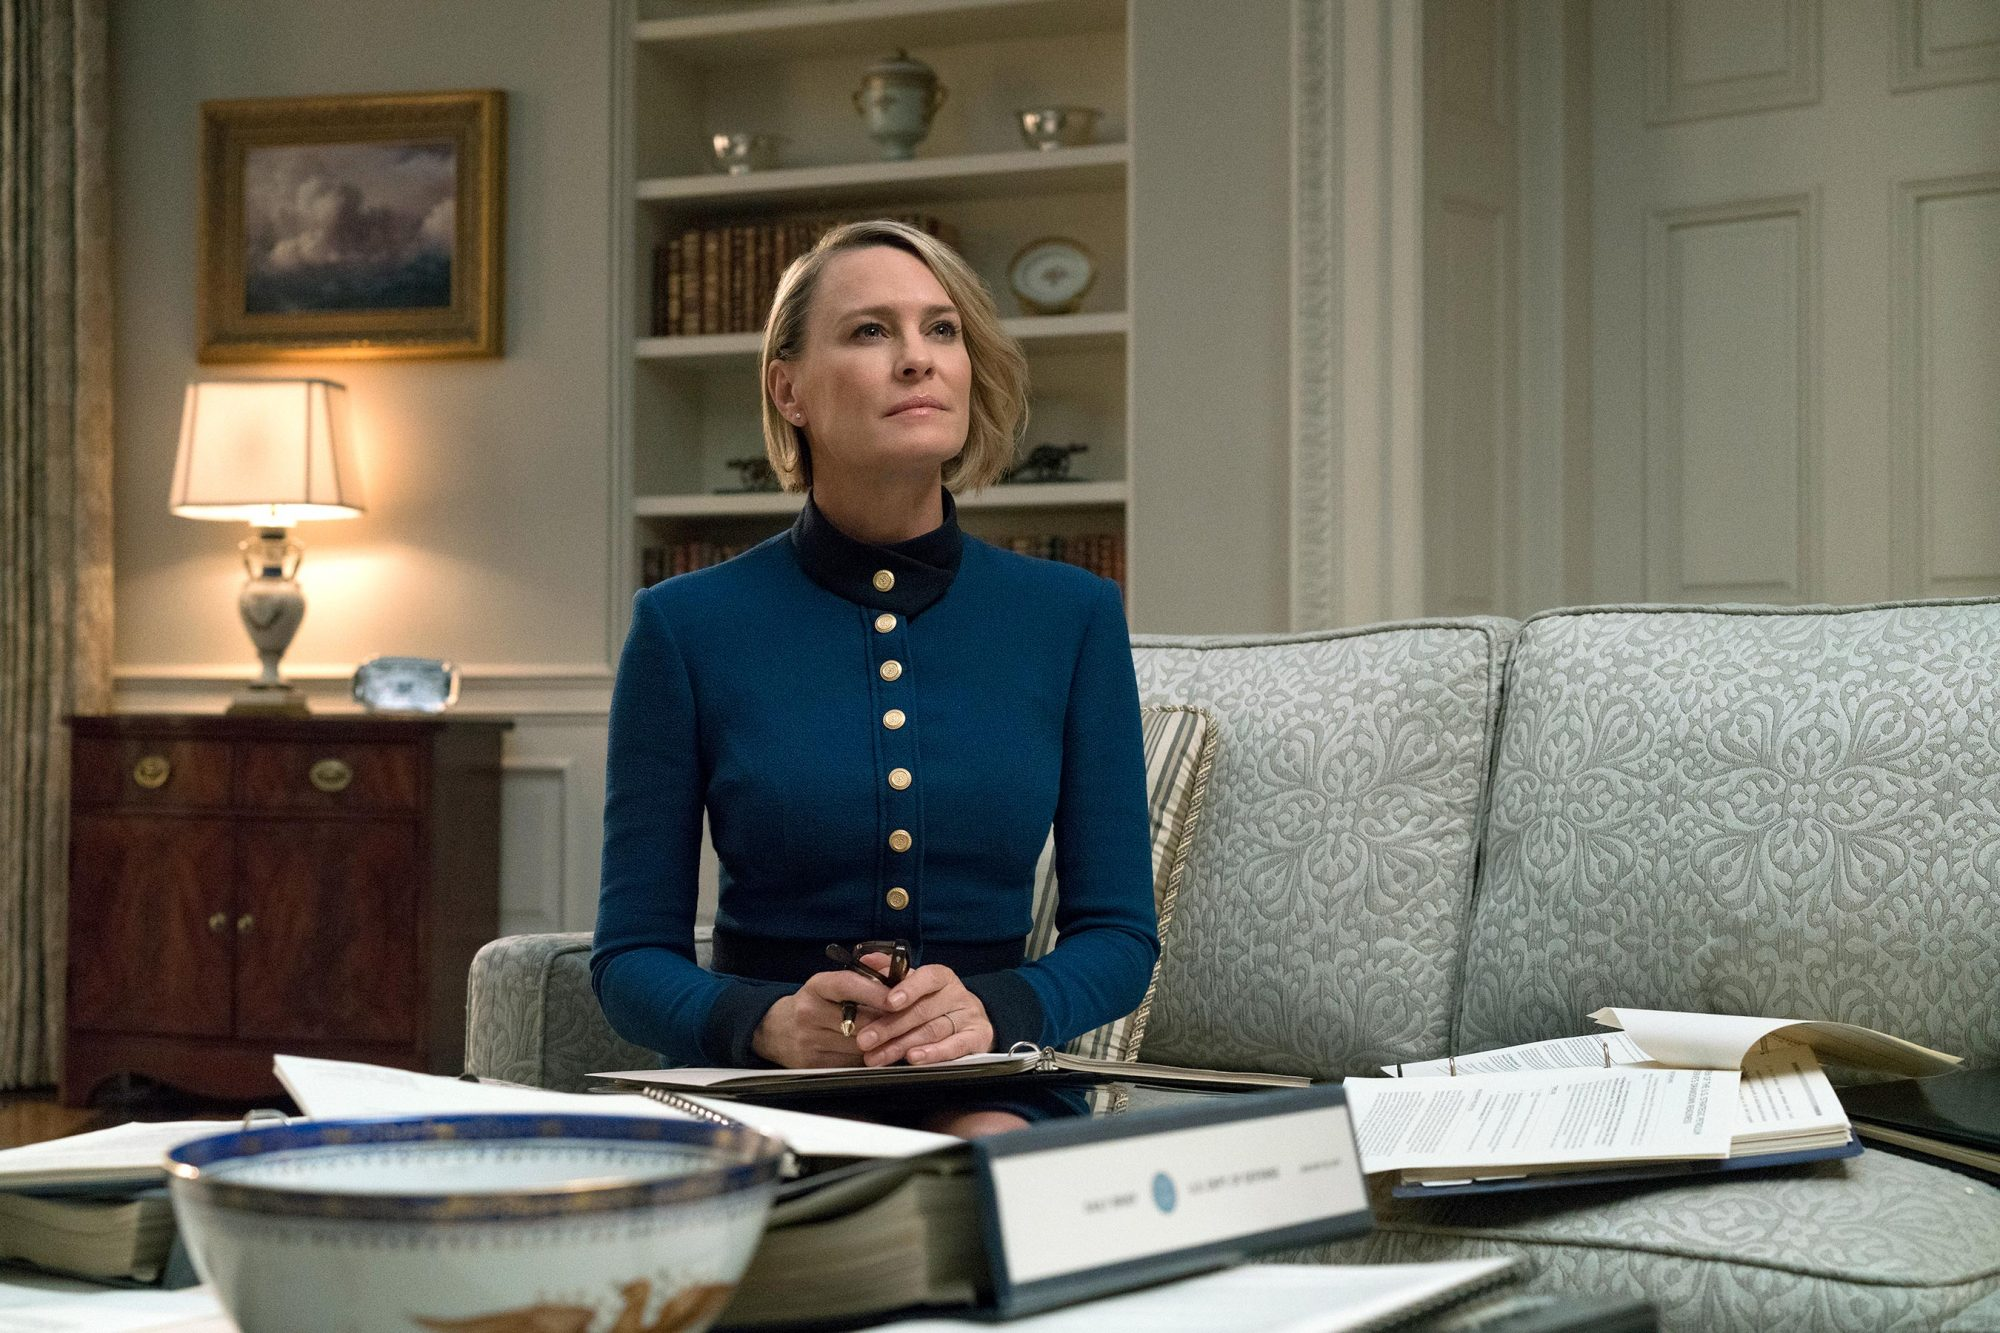 RECAP: House of Cards Season 5, Ep. 6